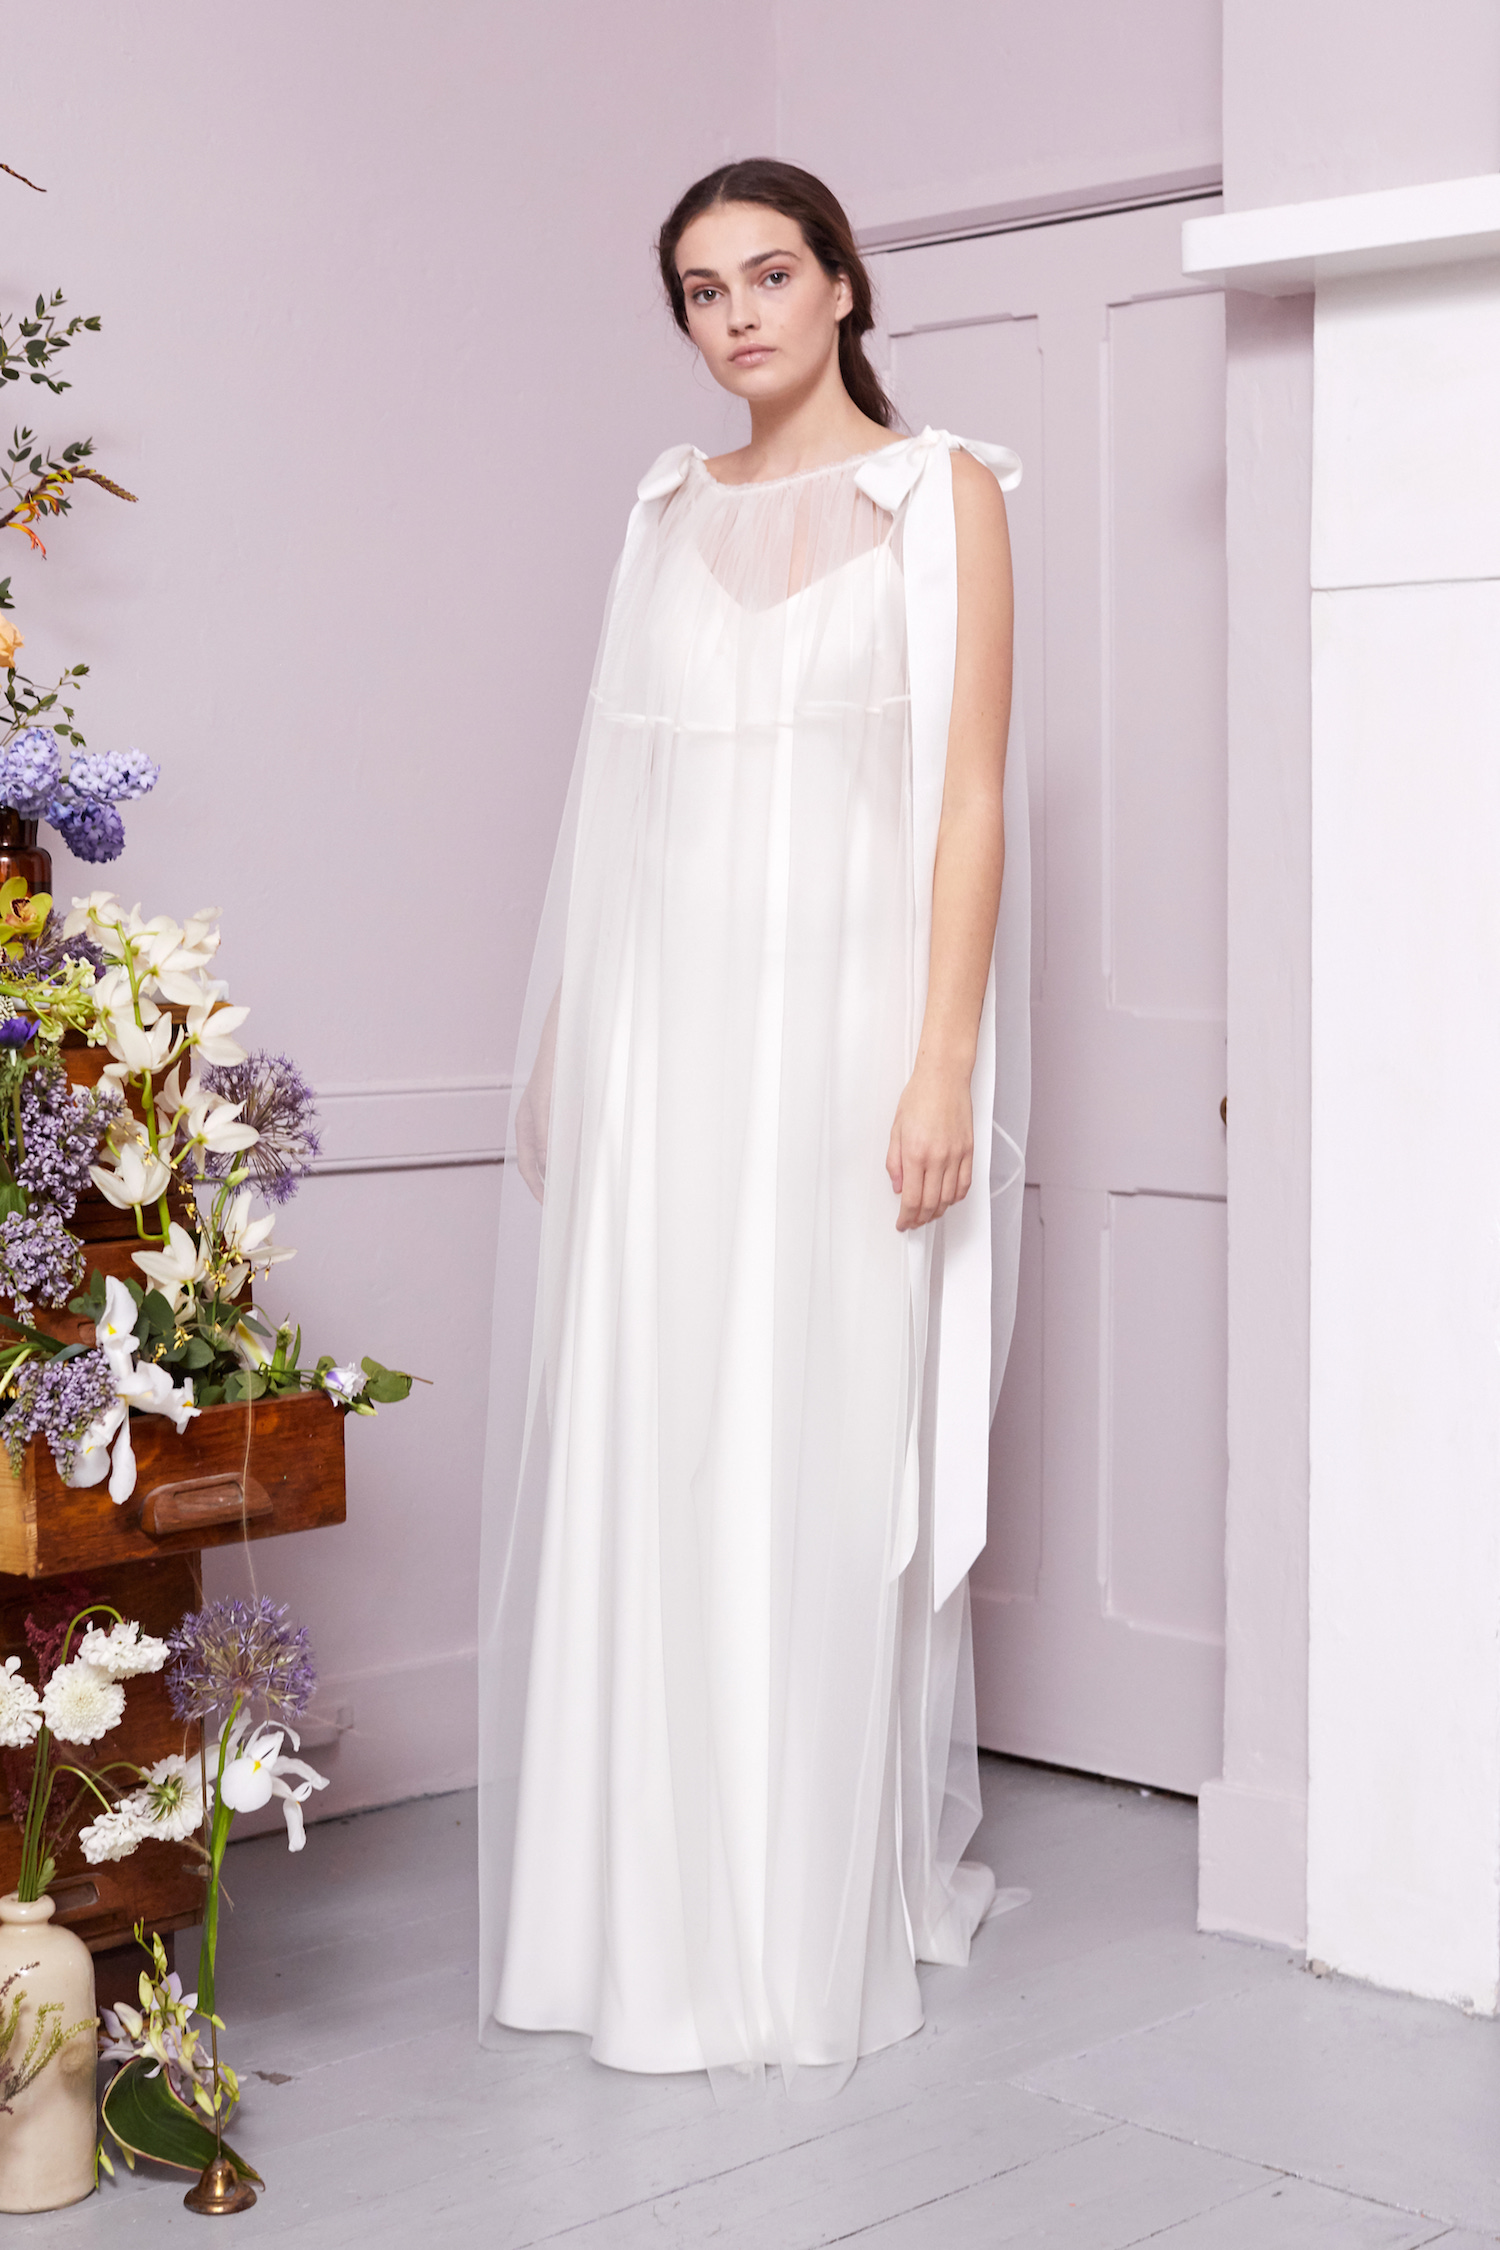 MONDRAIN TABARD & IRIS SLIP | WEDDING DRESS BY HALFPENNY LONDON